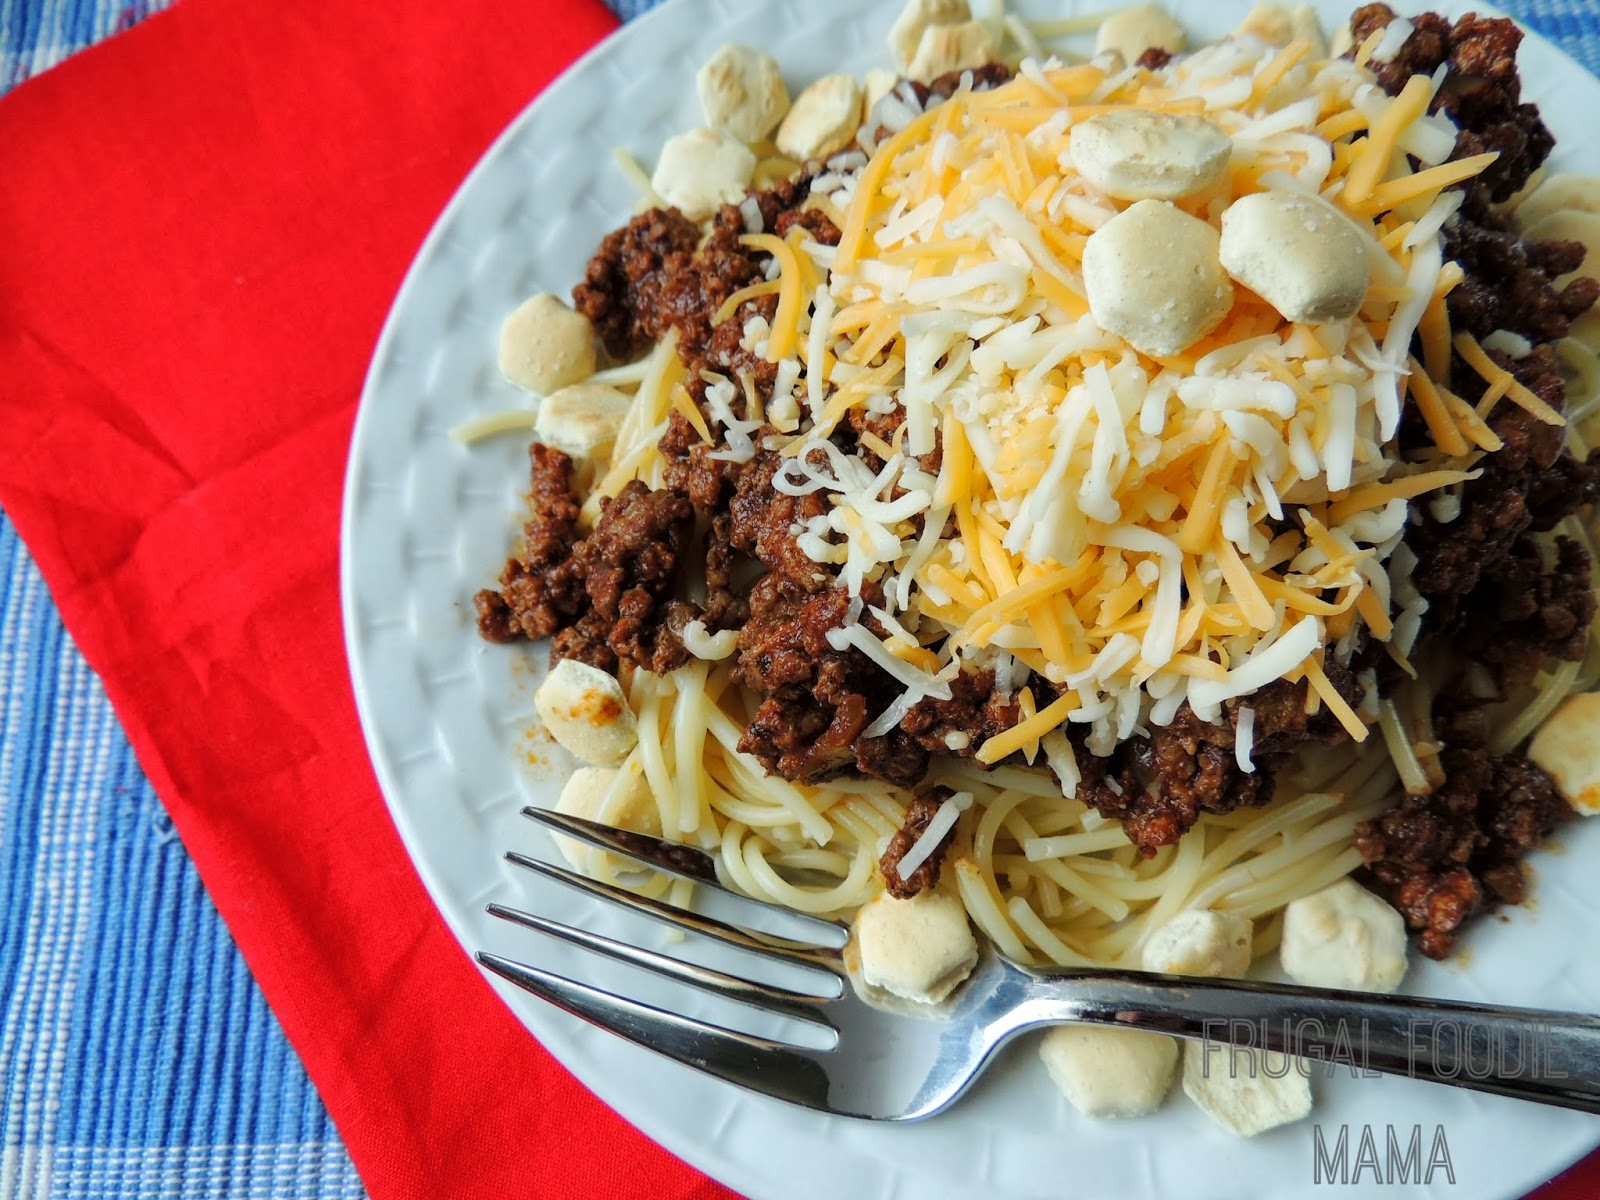 This CopyCat Cincy 3-Way Chili is a heaping plate of spaghetti topped with a perfectly spiced, slow cooked beef chili, a heaping mound of shredded cheddar cheese, & a sprinkle of oyster crackers... an Ohio favorite!